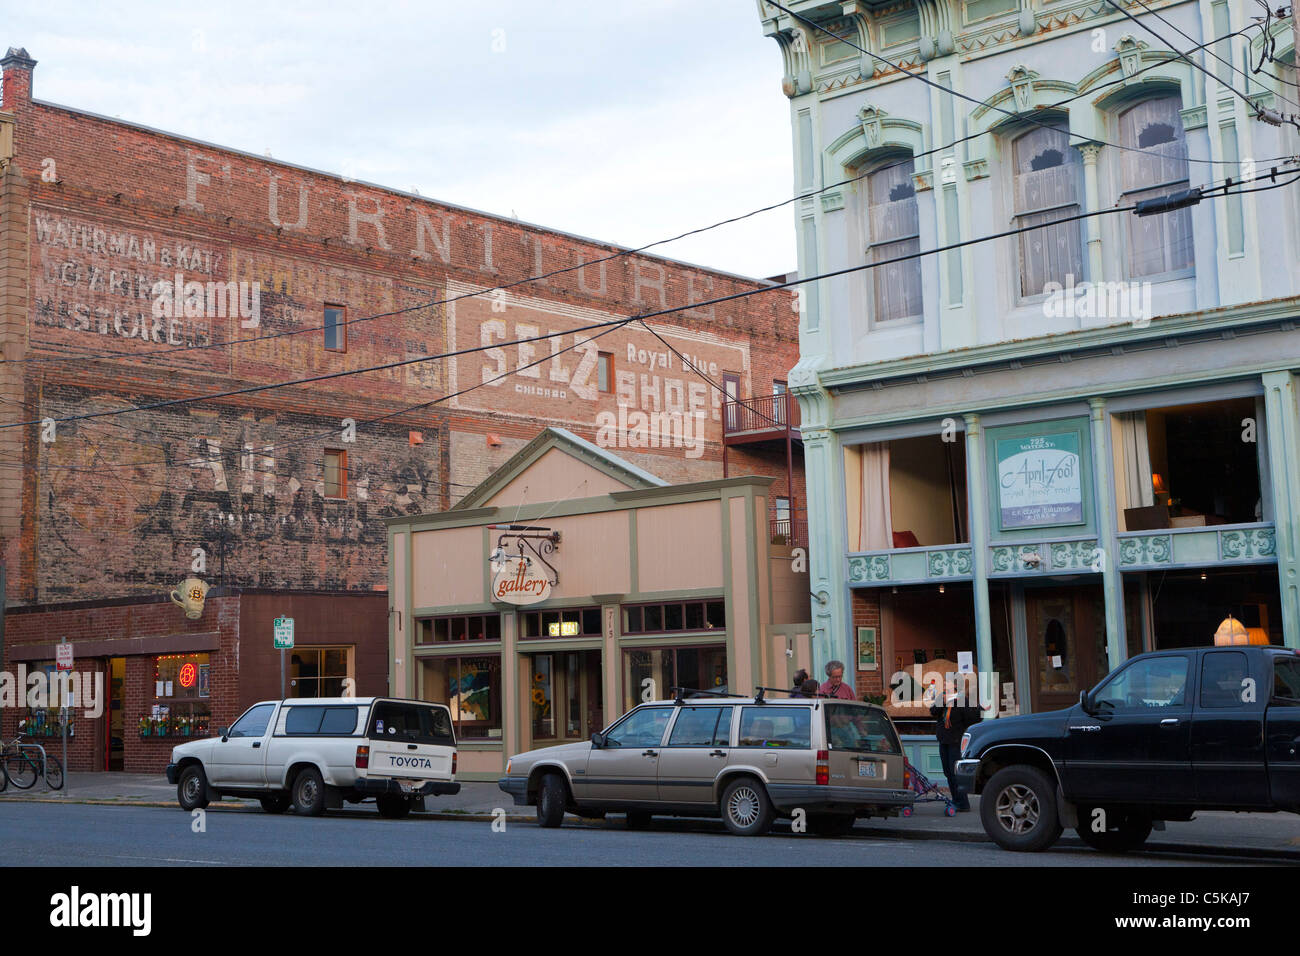 Port townsend main street washington usa stock image